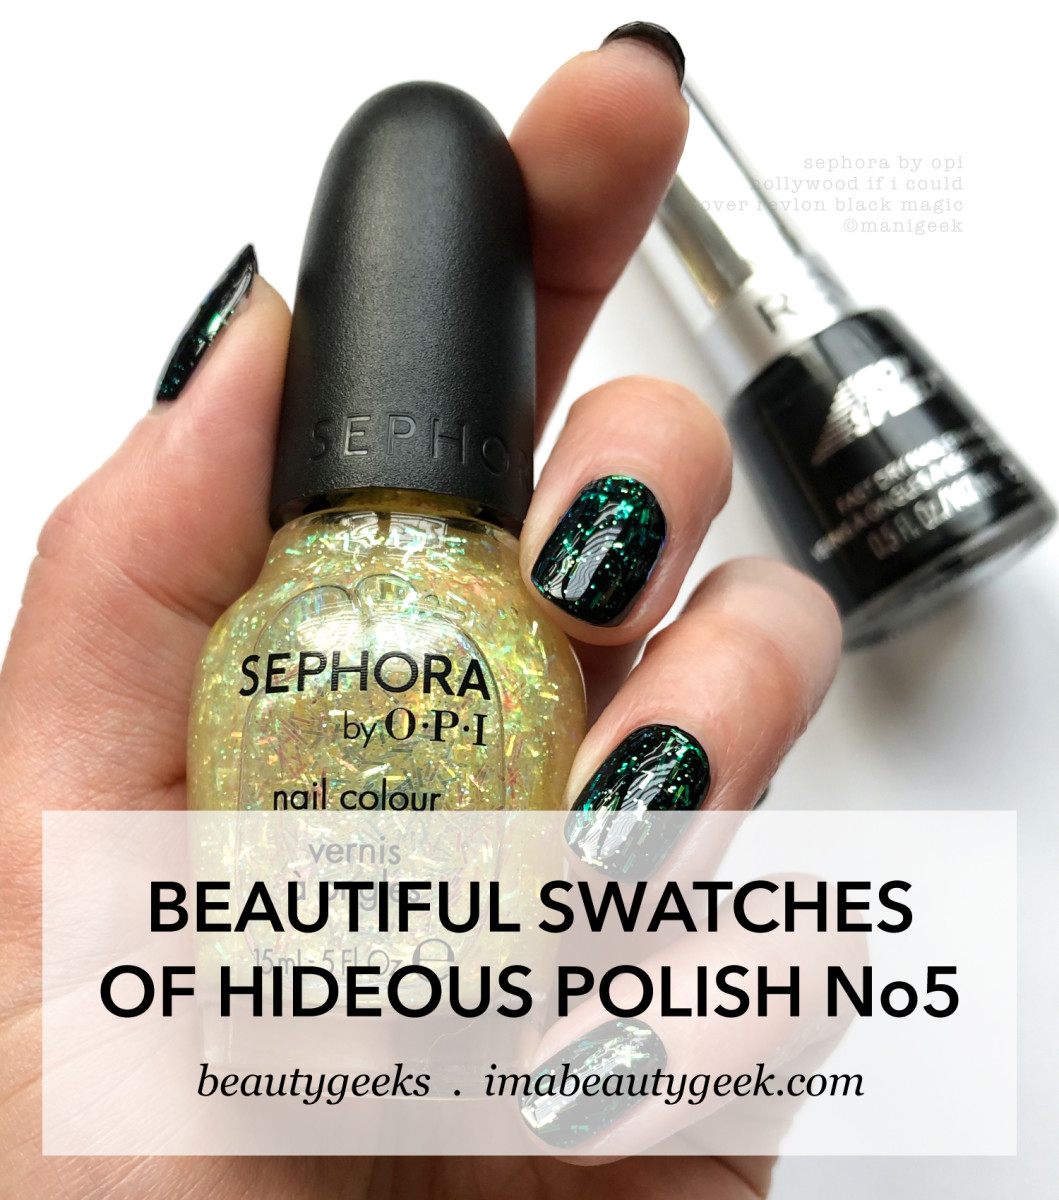 Sephora by OPI Hollywood if I Could over Black_NOTD